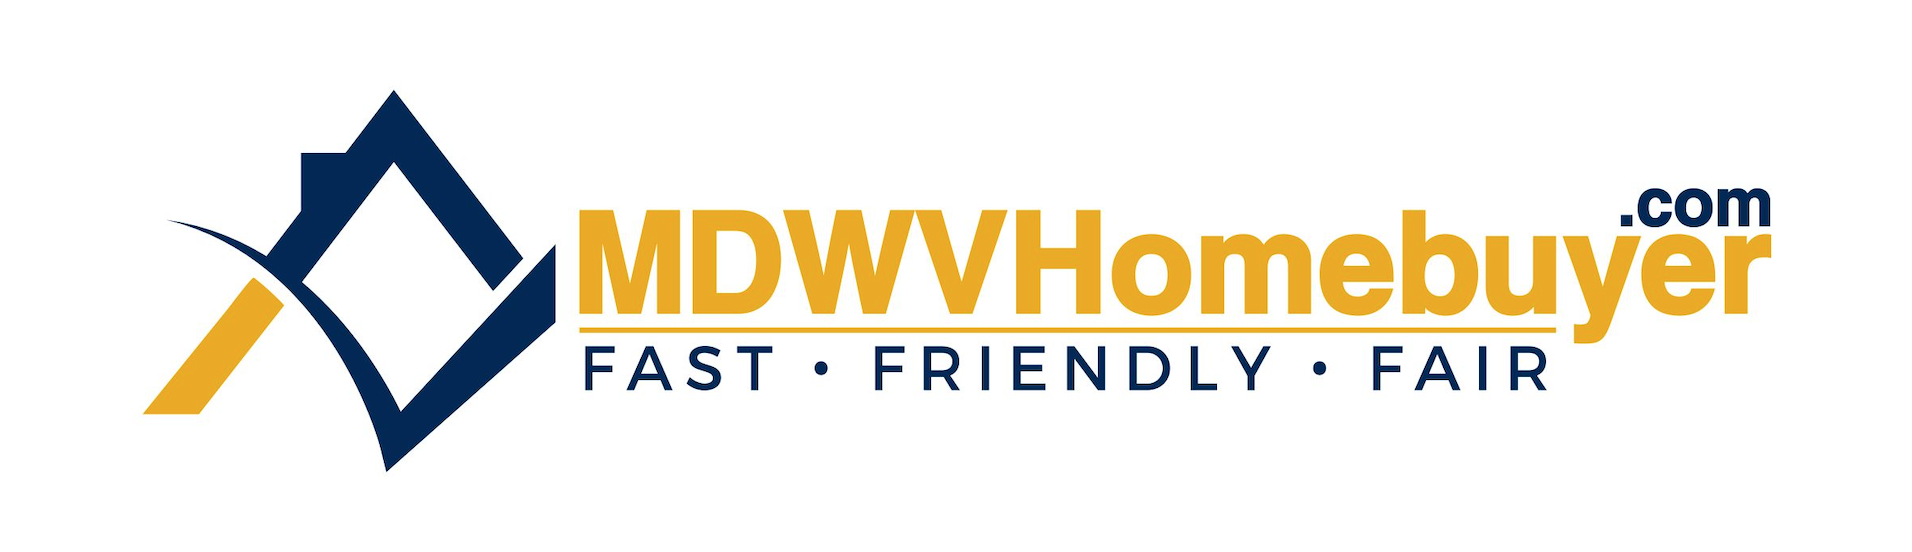 MD WV Homebuyer logo